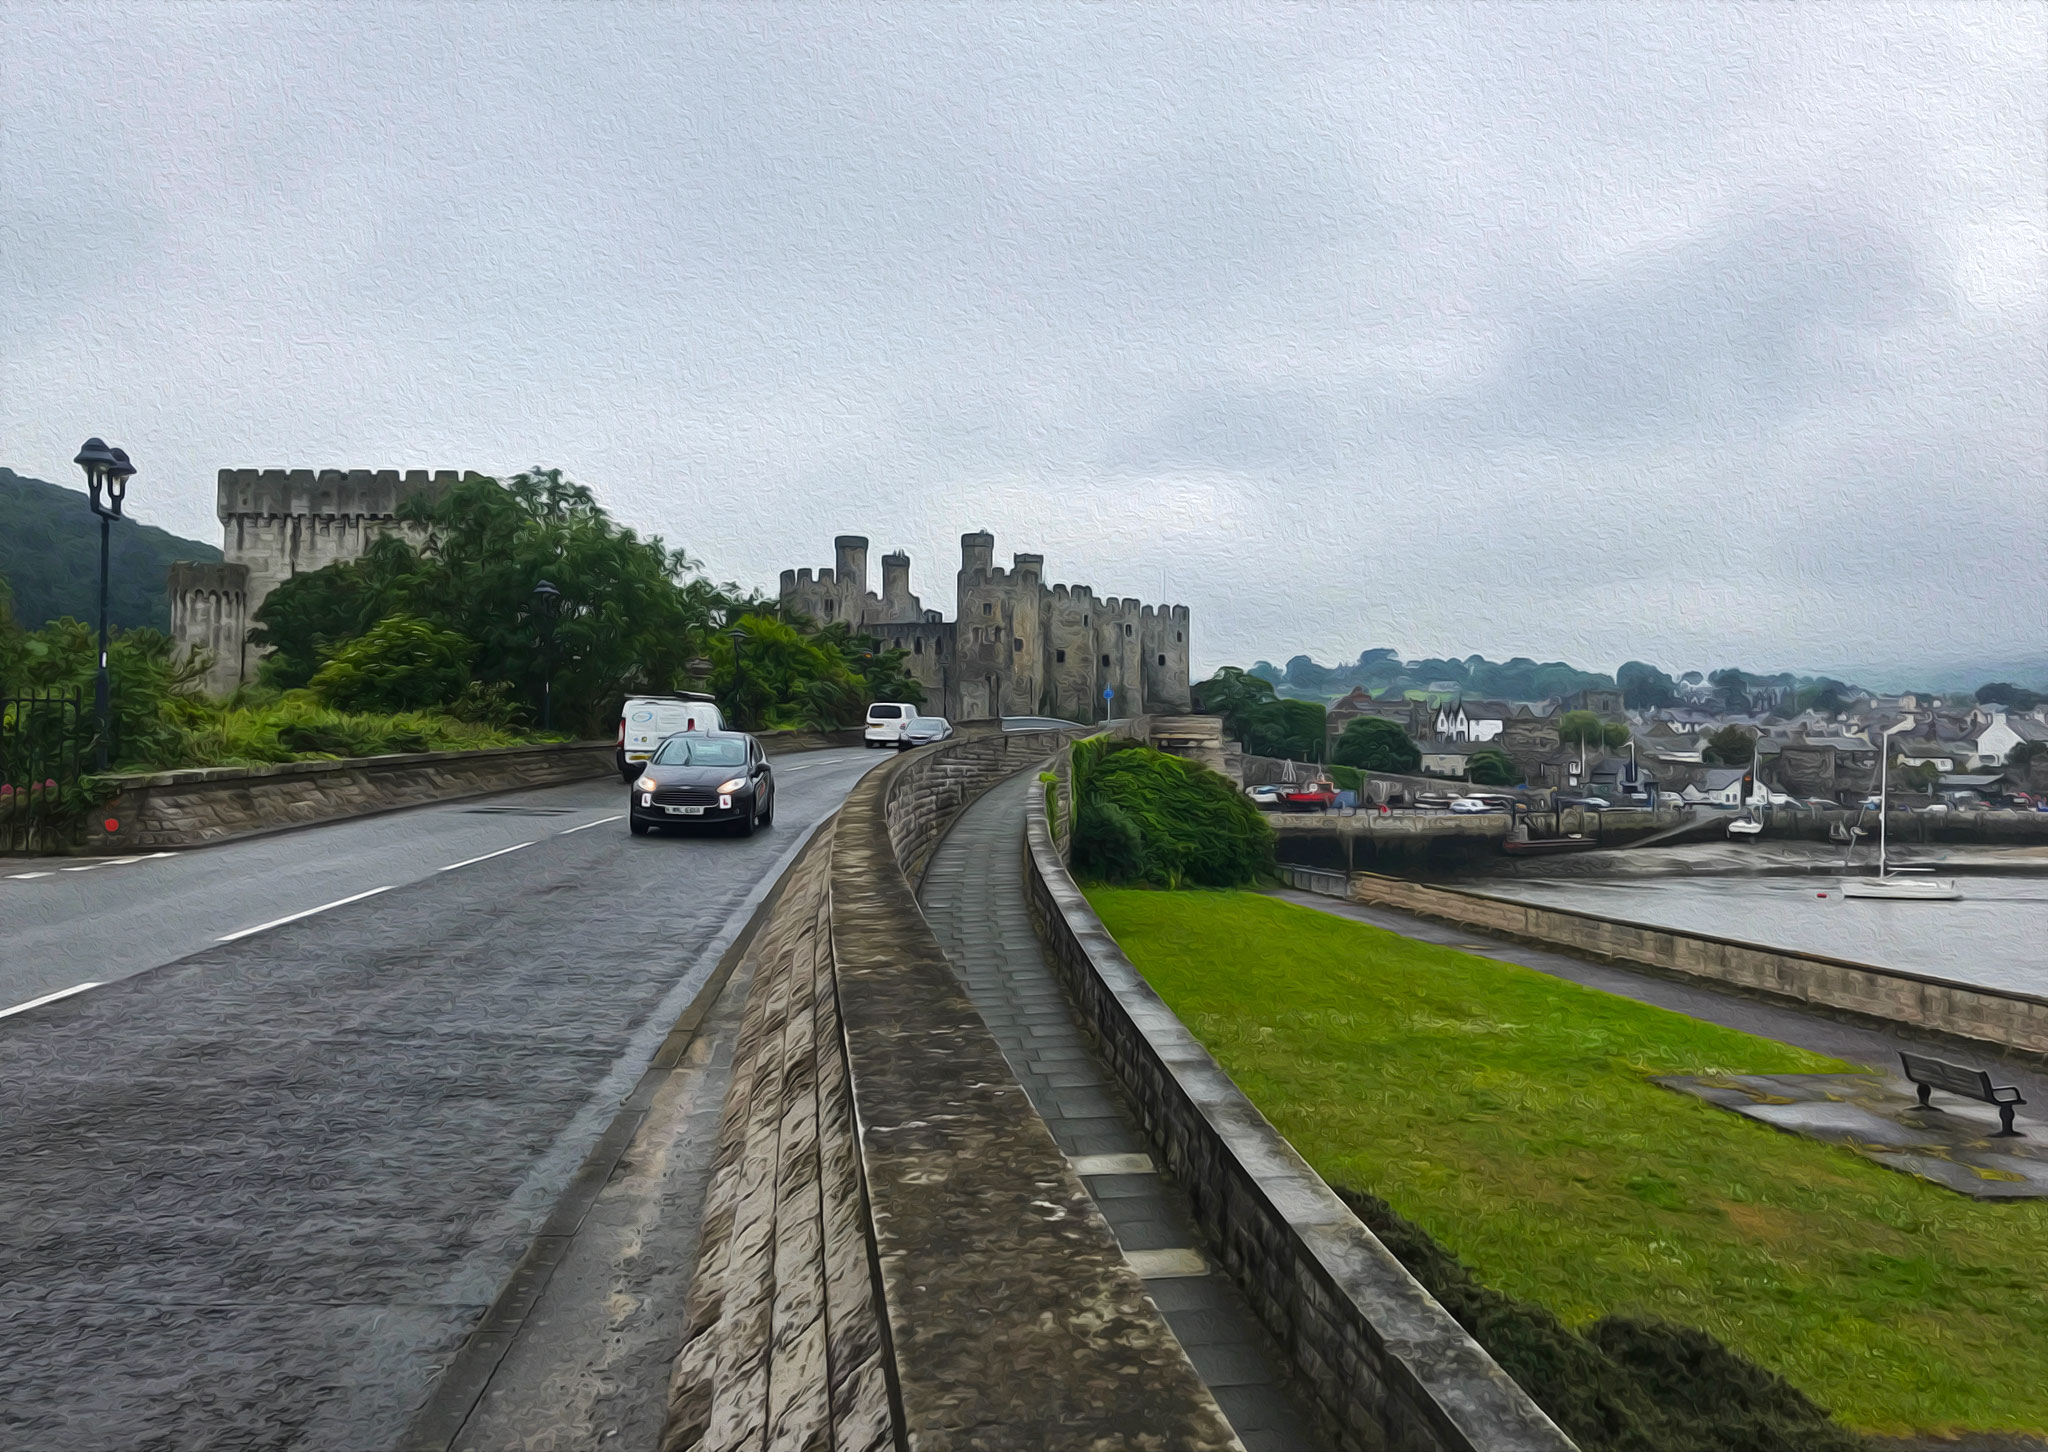 Wales: Conwy and Conwy Castle